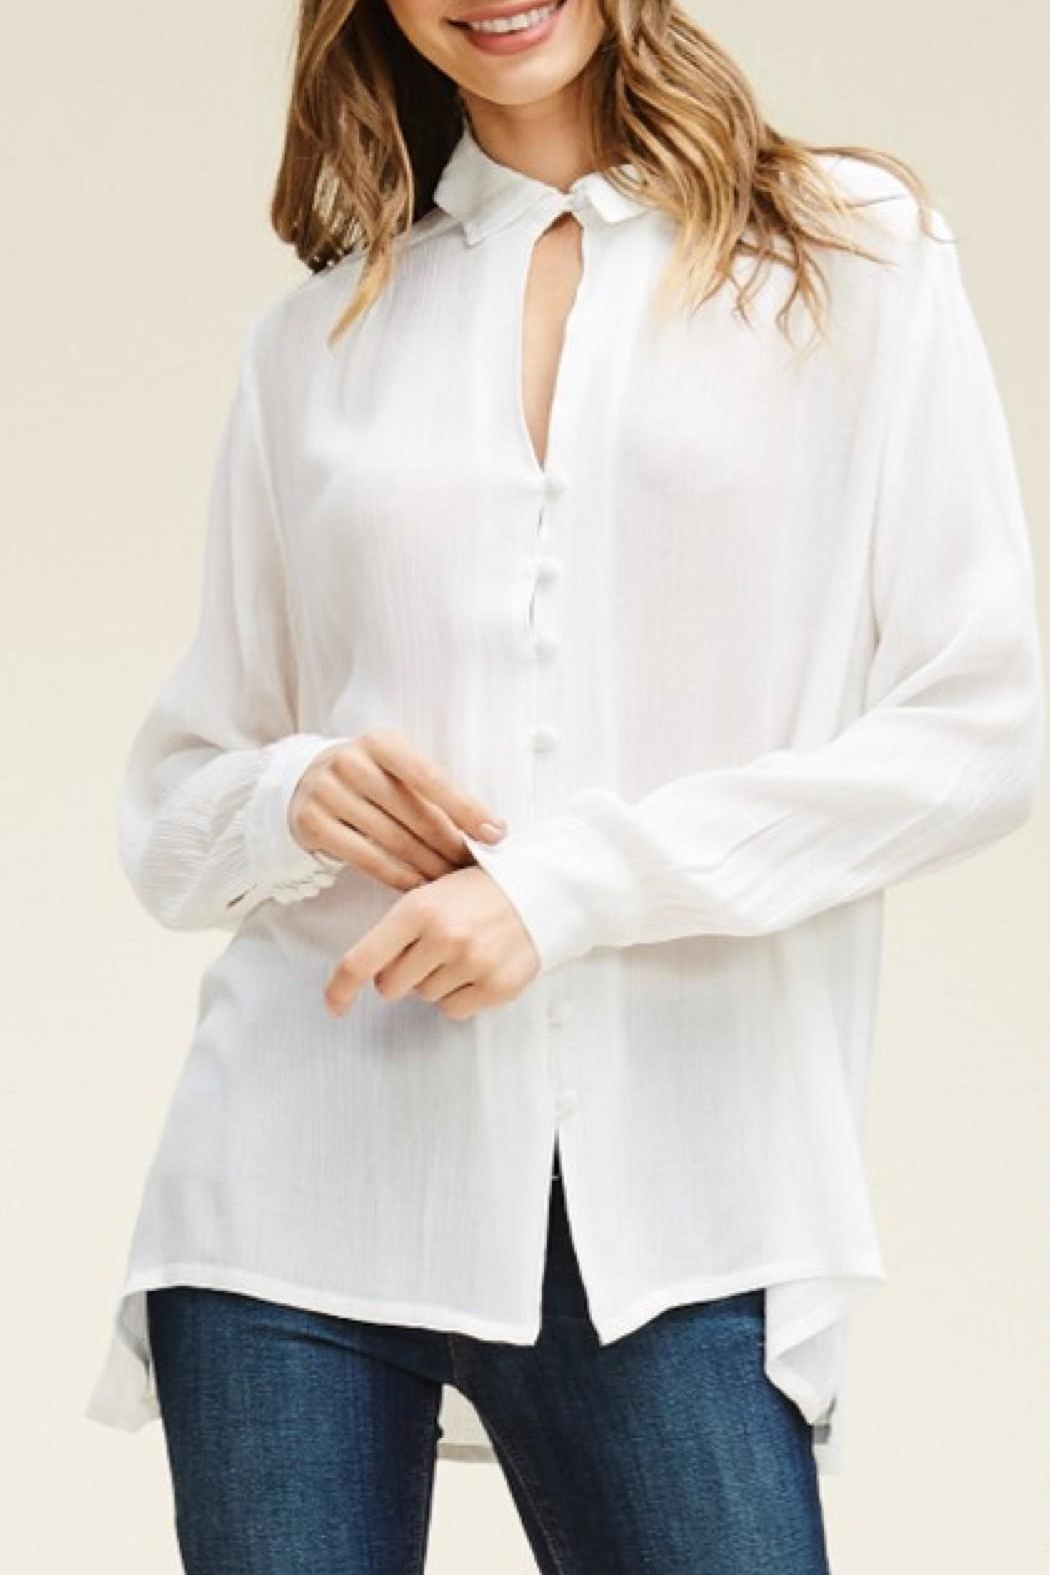 annabelle Keyhole Button-Down Blouse from Orange County by